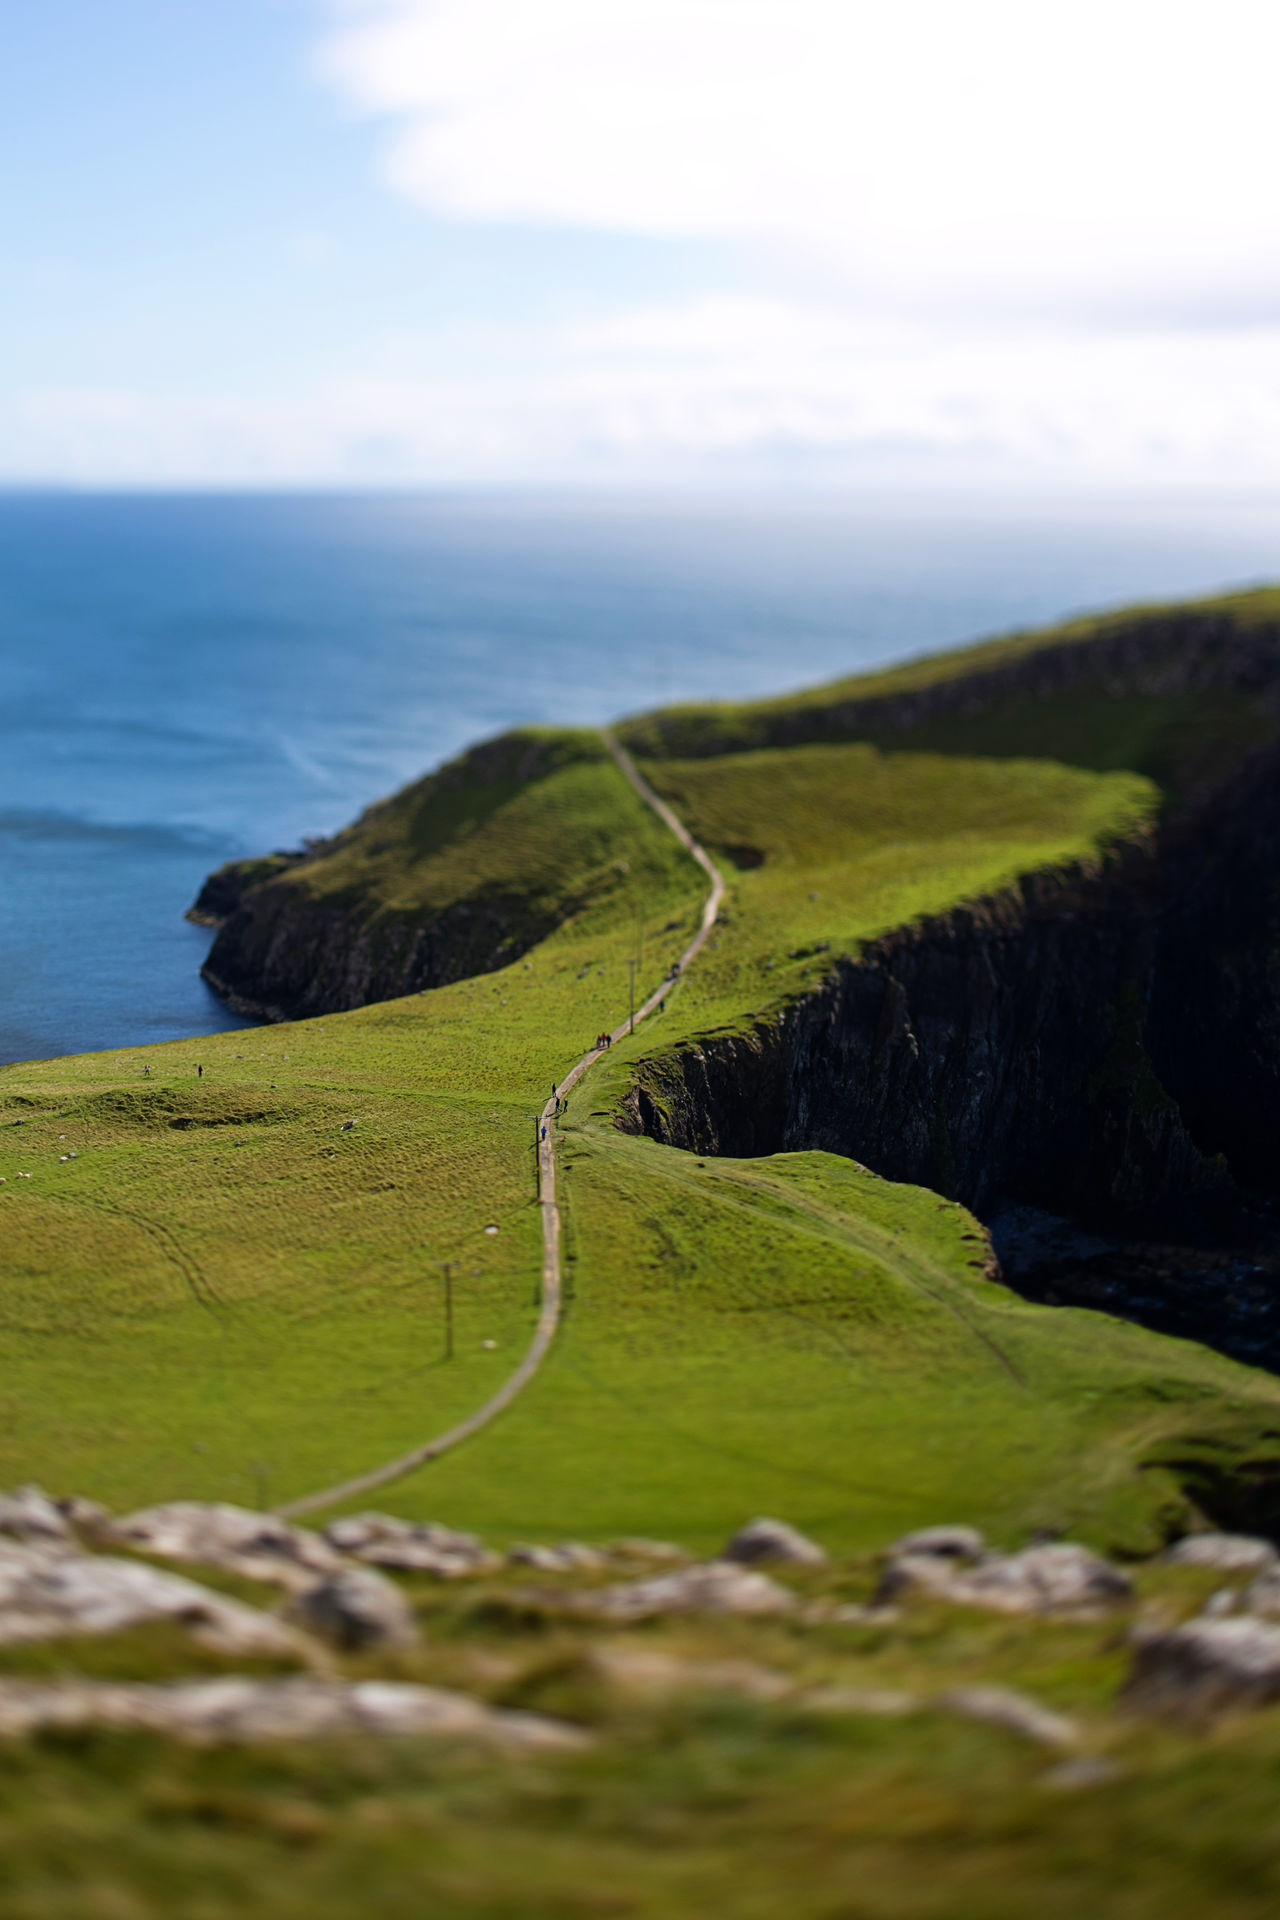 End of the world Beauty In Nature Cliff Day End Of The World Famous Landmarks Grass Holiday Landscape Miniature Nature Outdoors Scenics Sea Tiltshift Travel Travel Destinations Vacations Winding Road